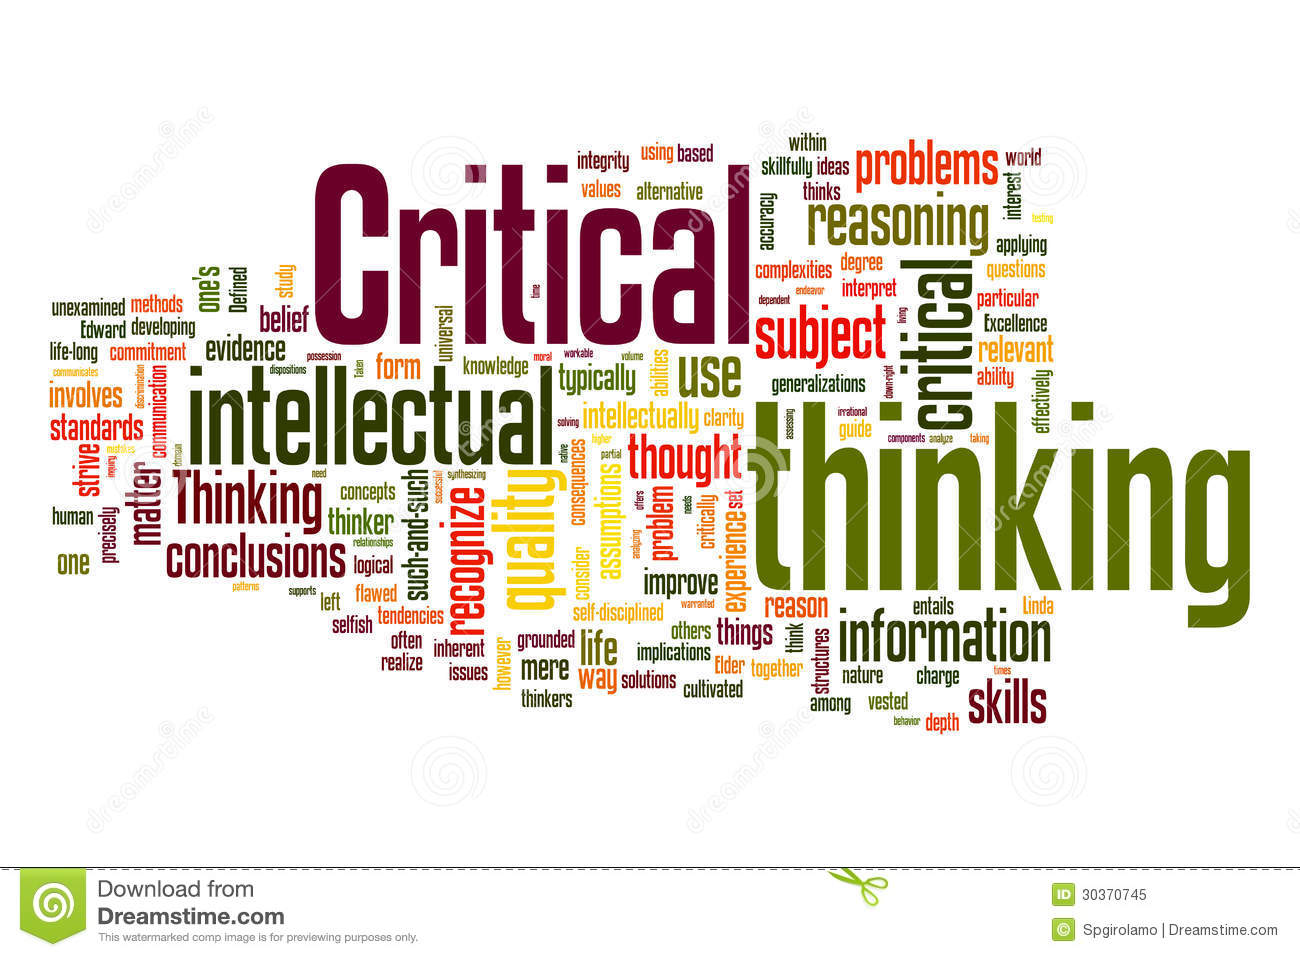 critical thinking and creativity are Critical thinking is an important issue in education today we need to recognize that good thinking requires both critical and creative thinking.